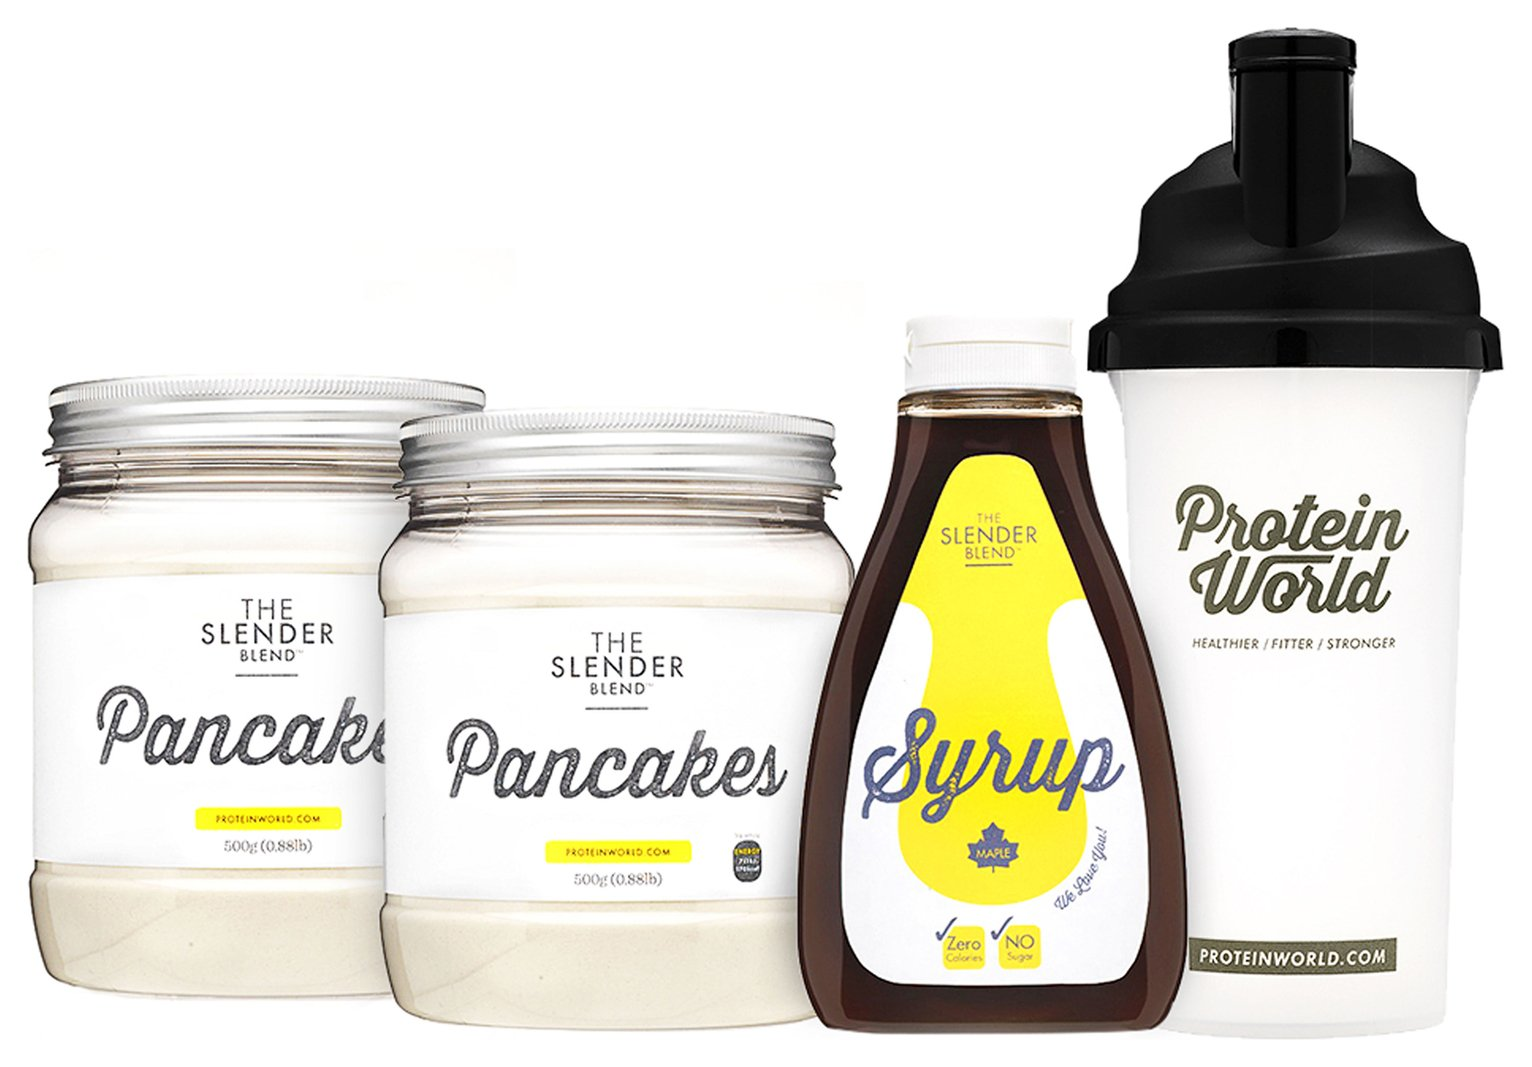 Protein World Pancake Collection